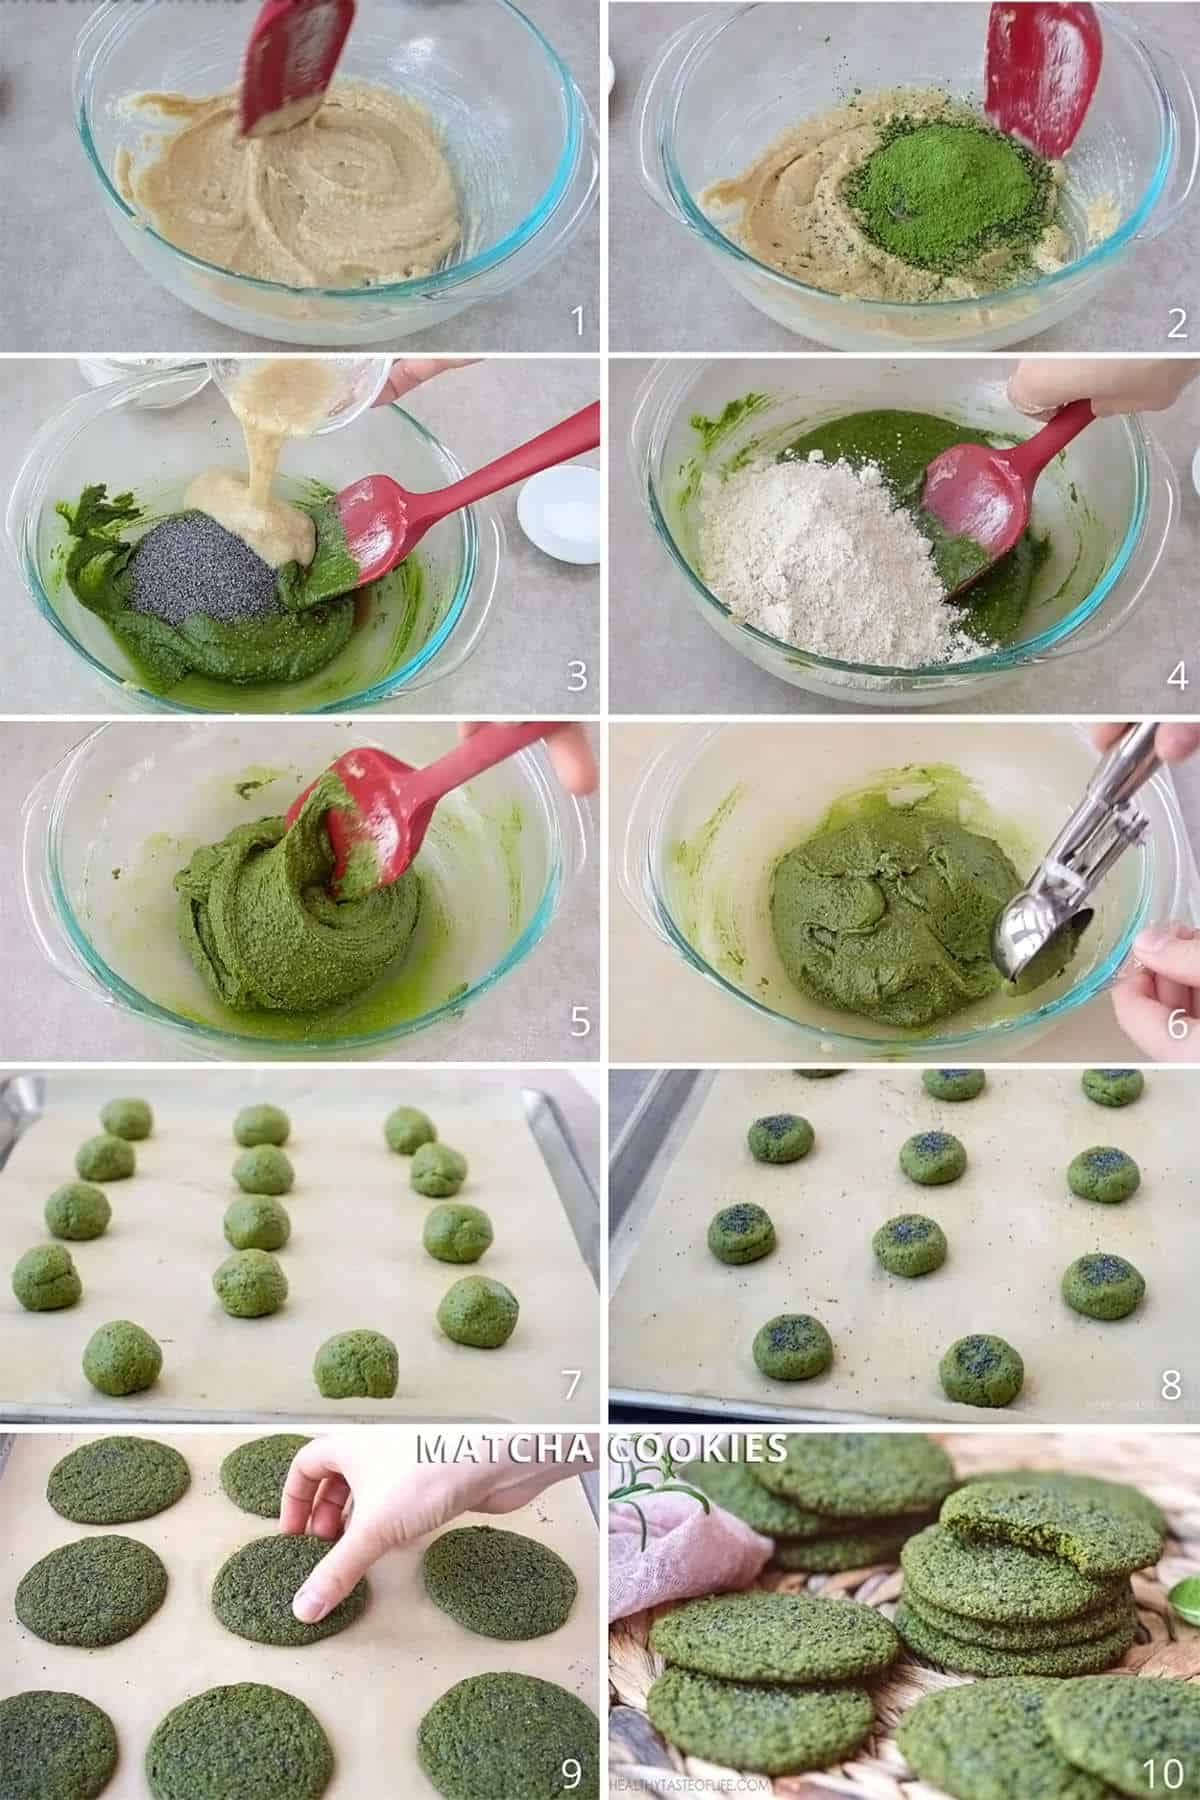 How to make healthy vegan matcha cookies with gluten free flour and without egg. How to make chewy matcha cookies and matcha oatmeal cookies without eggs and refined sugar. #matchacookies #vegan #glutenfree #healthy #recipe #video